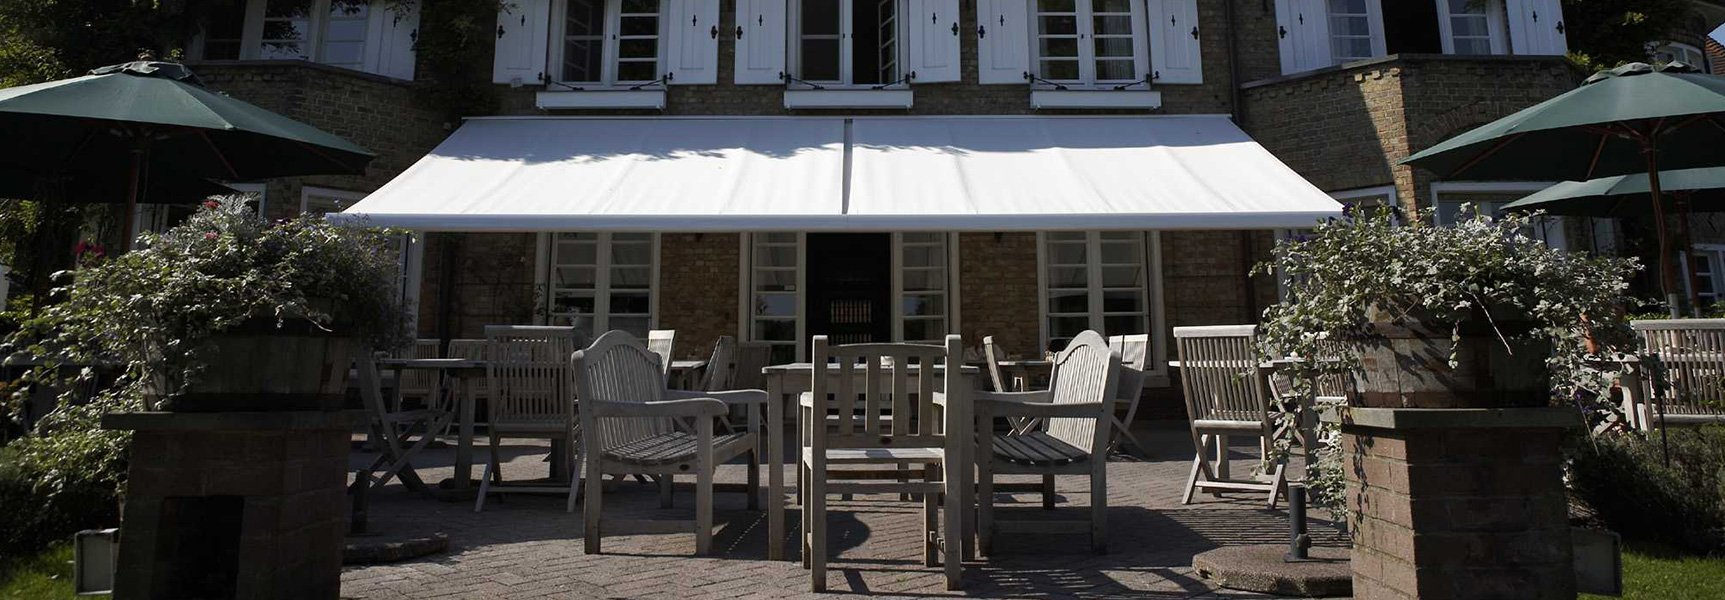 Retractable Restaurant Awnings Broadview Outdoor Shading